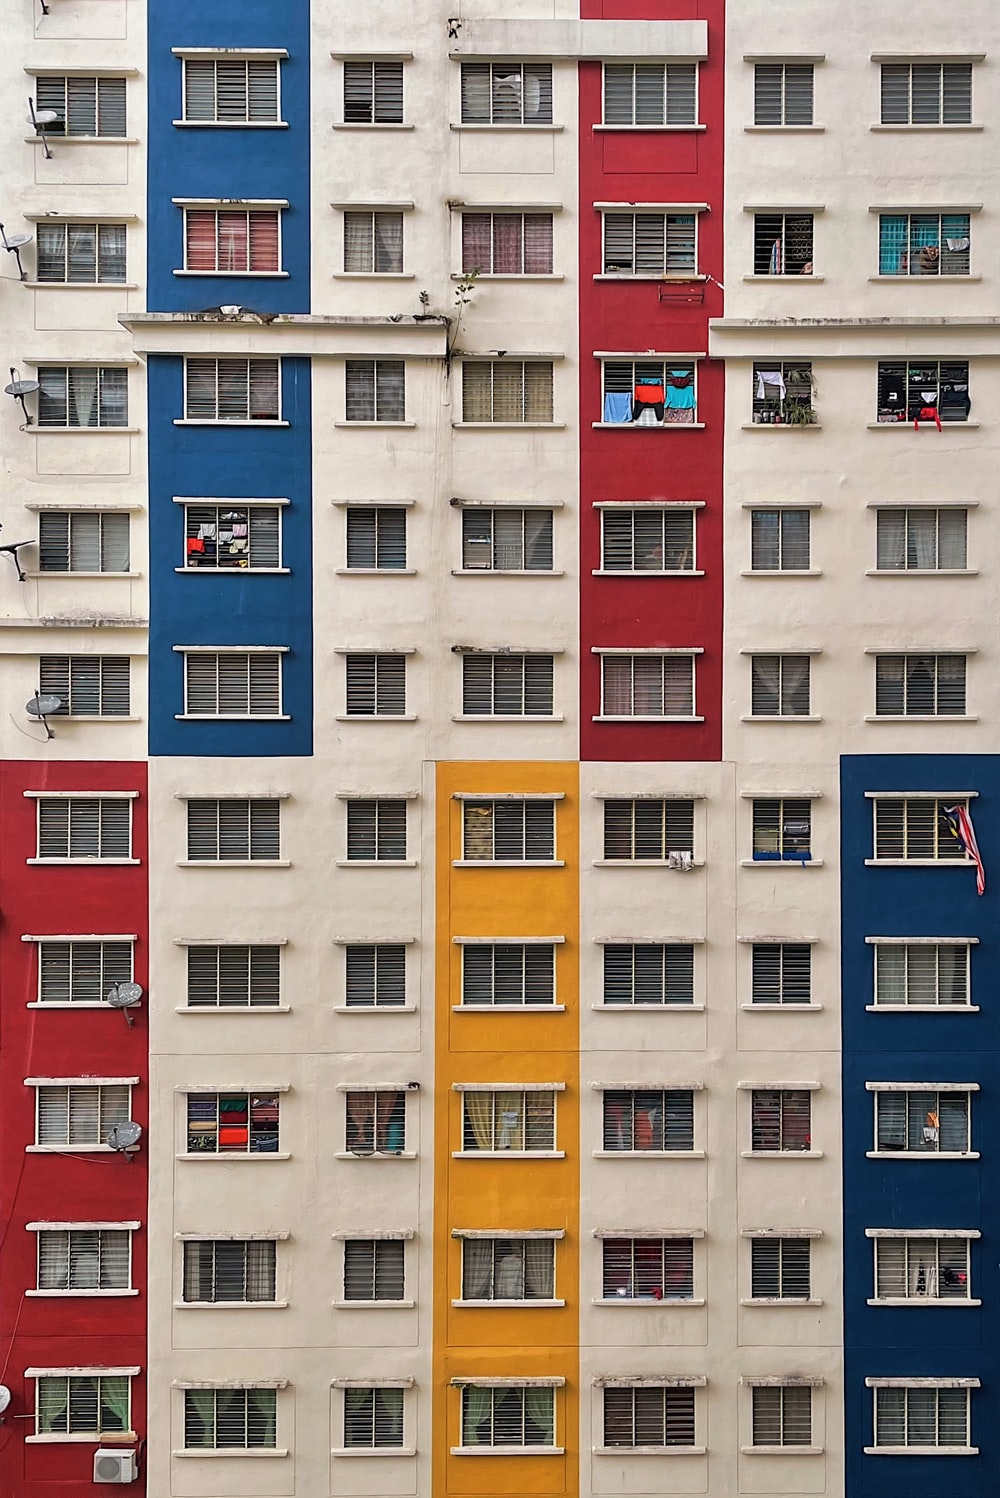 white red and blue concrete building